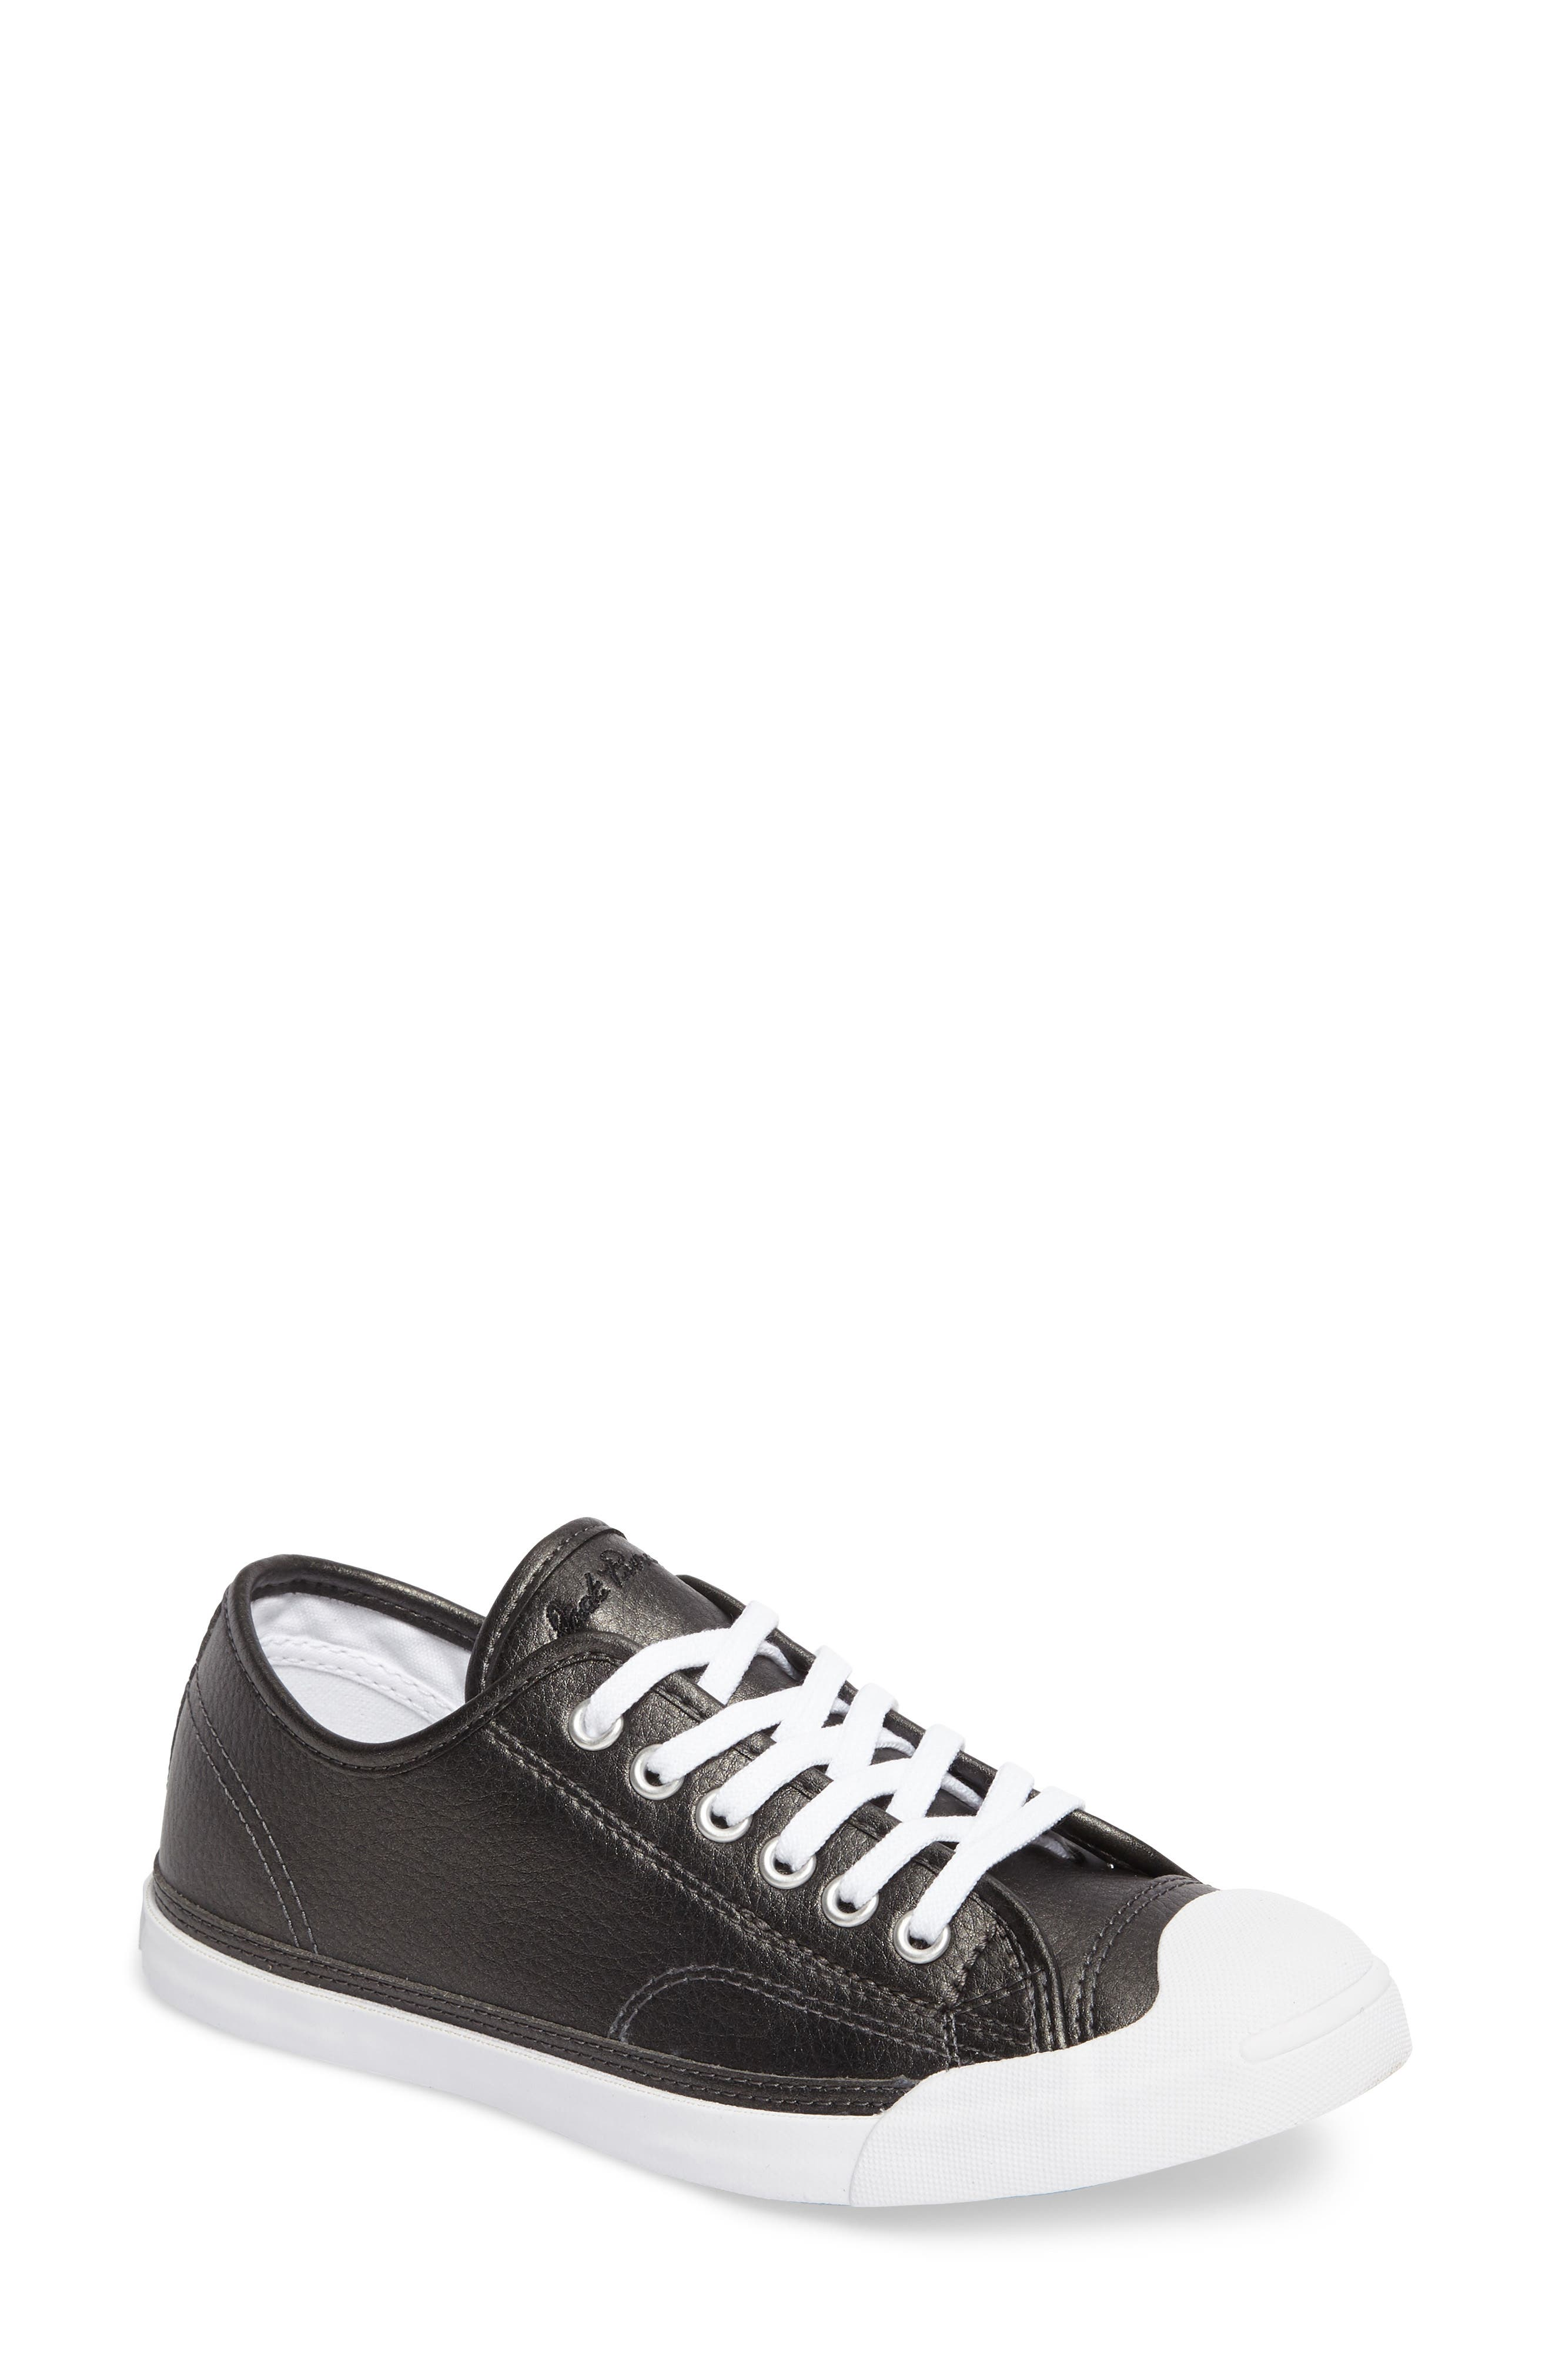 Jack Purcell Low Top Sneaker,                             Main thumbnail 1, color,                             001